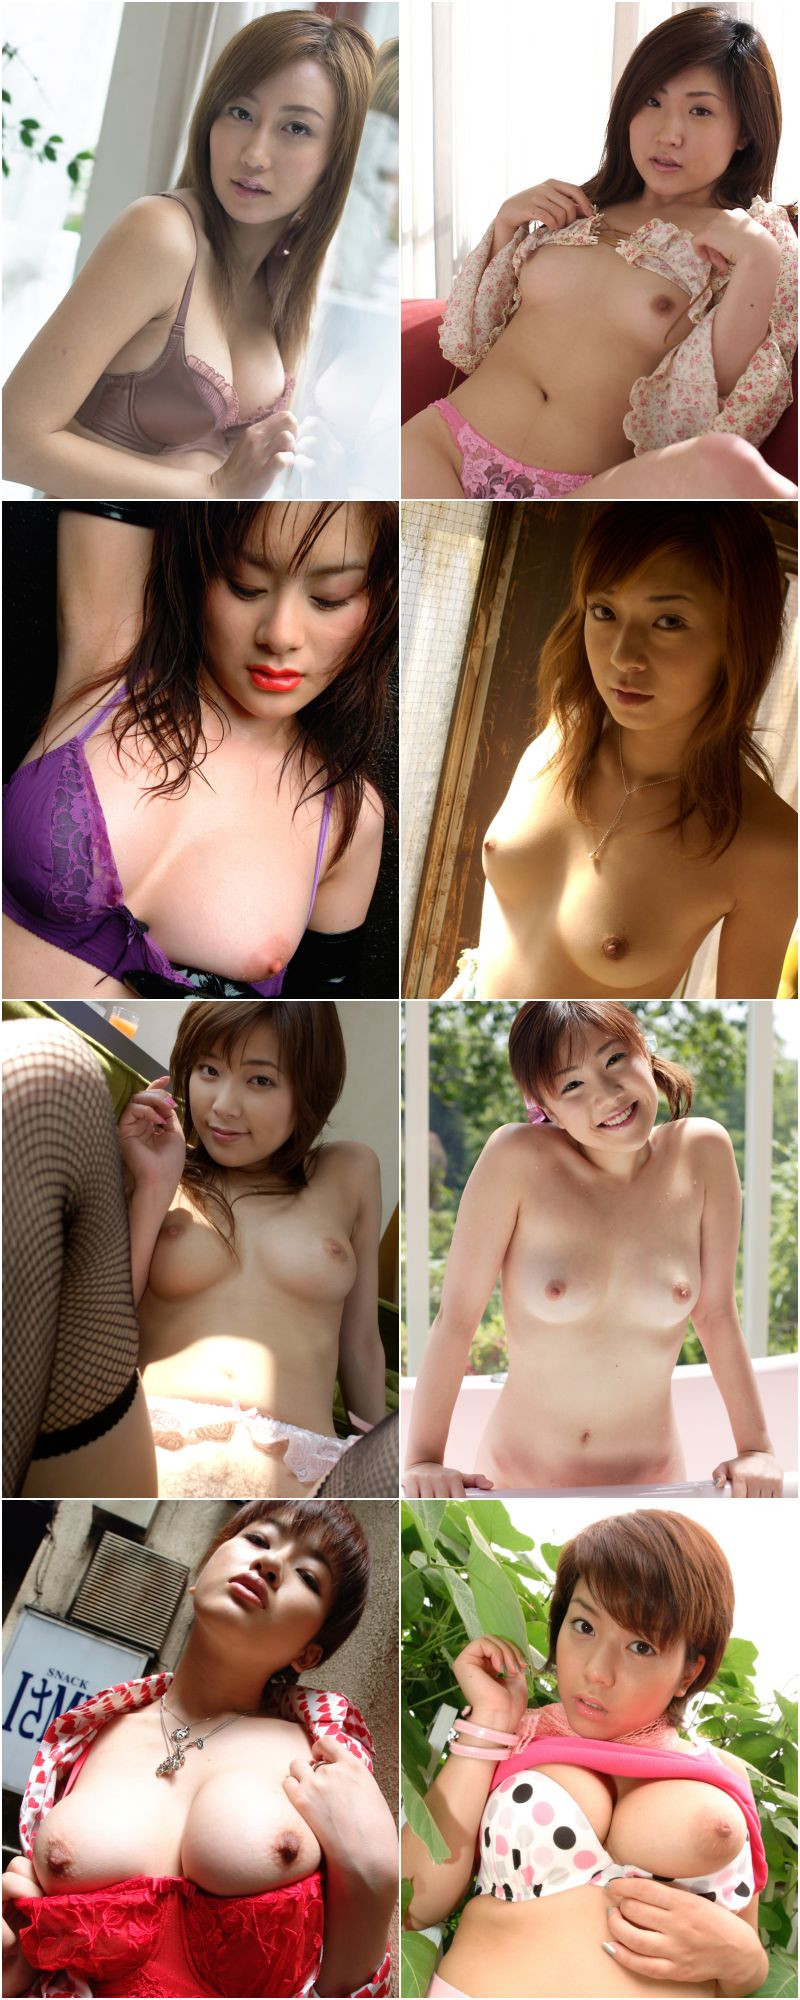 [X-City] Nude Fever 2004 Collection1